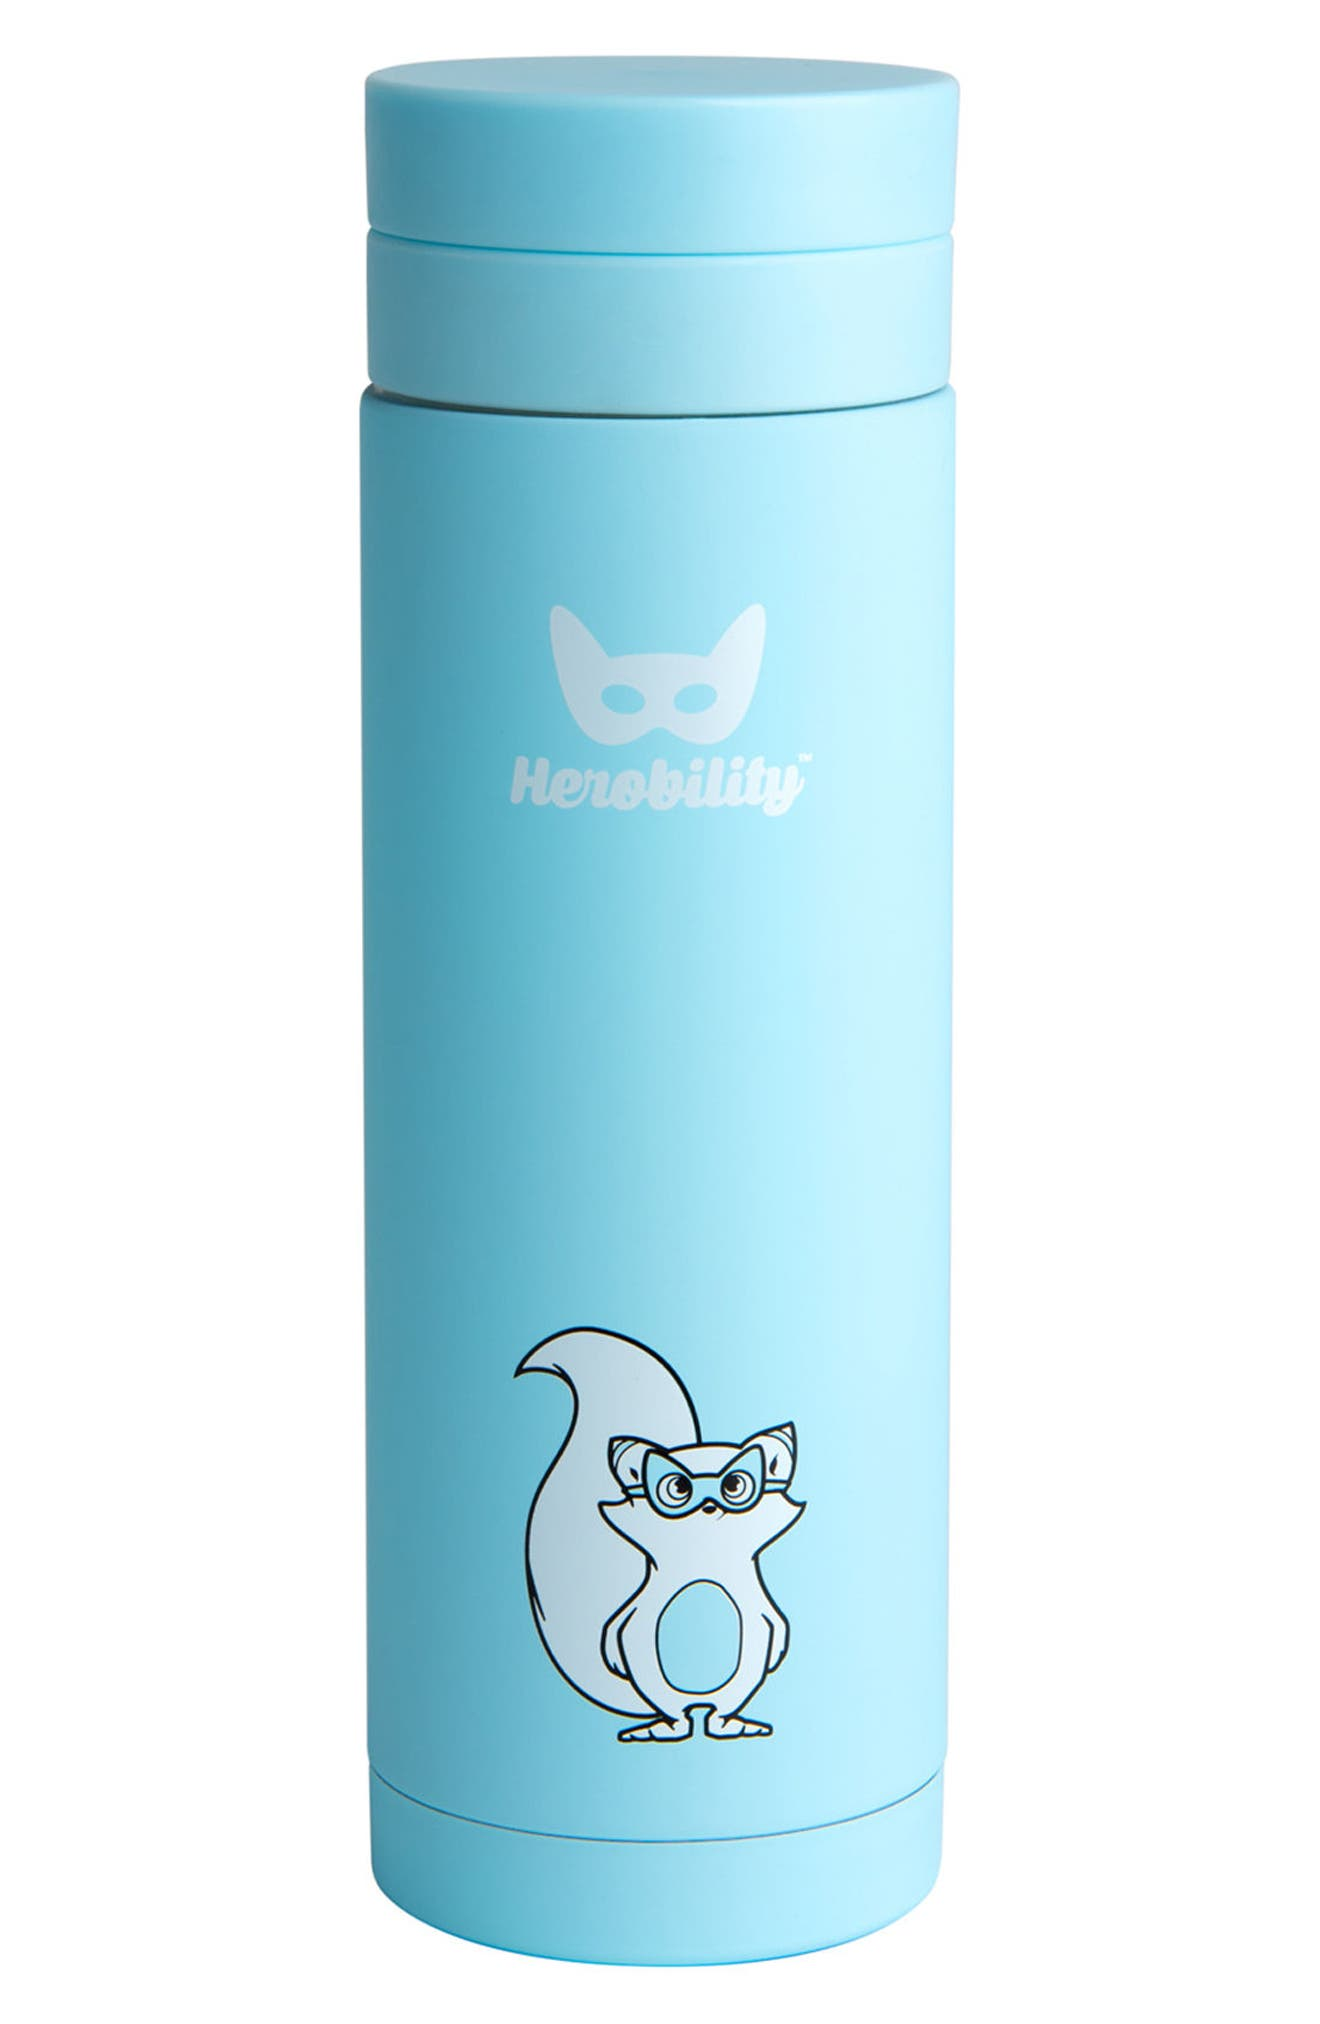 10-Ounce HeroTermos Stainless Steel Thermos,                         Main,                         color, Blue